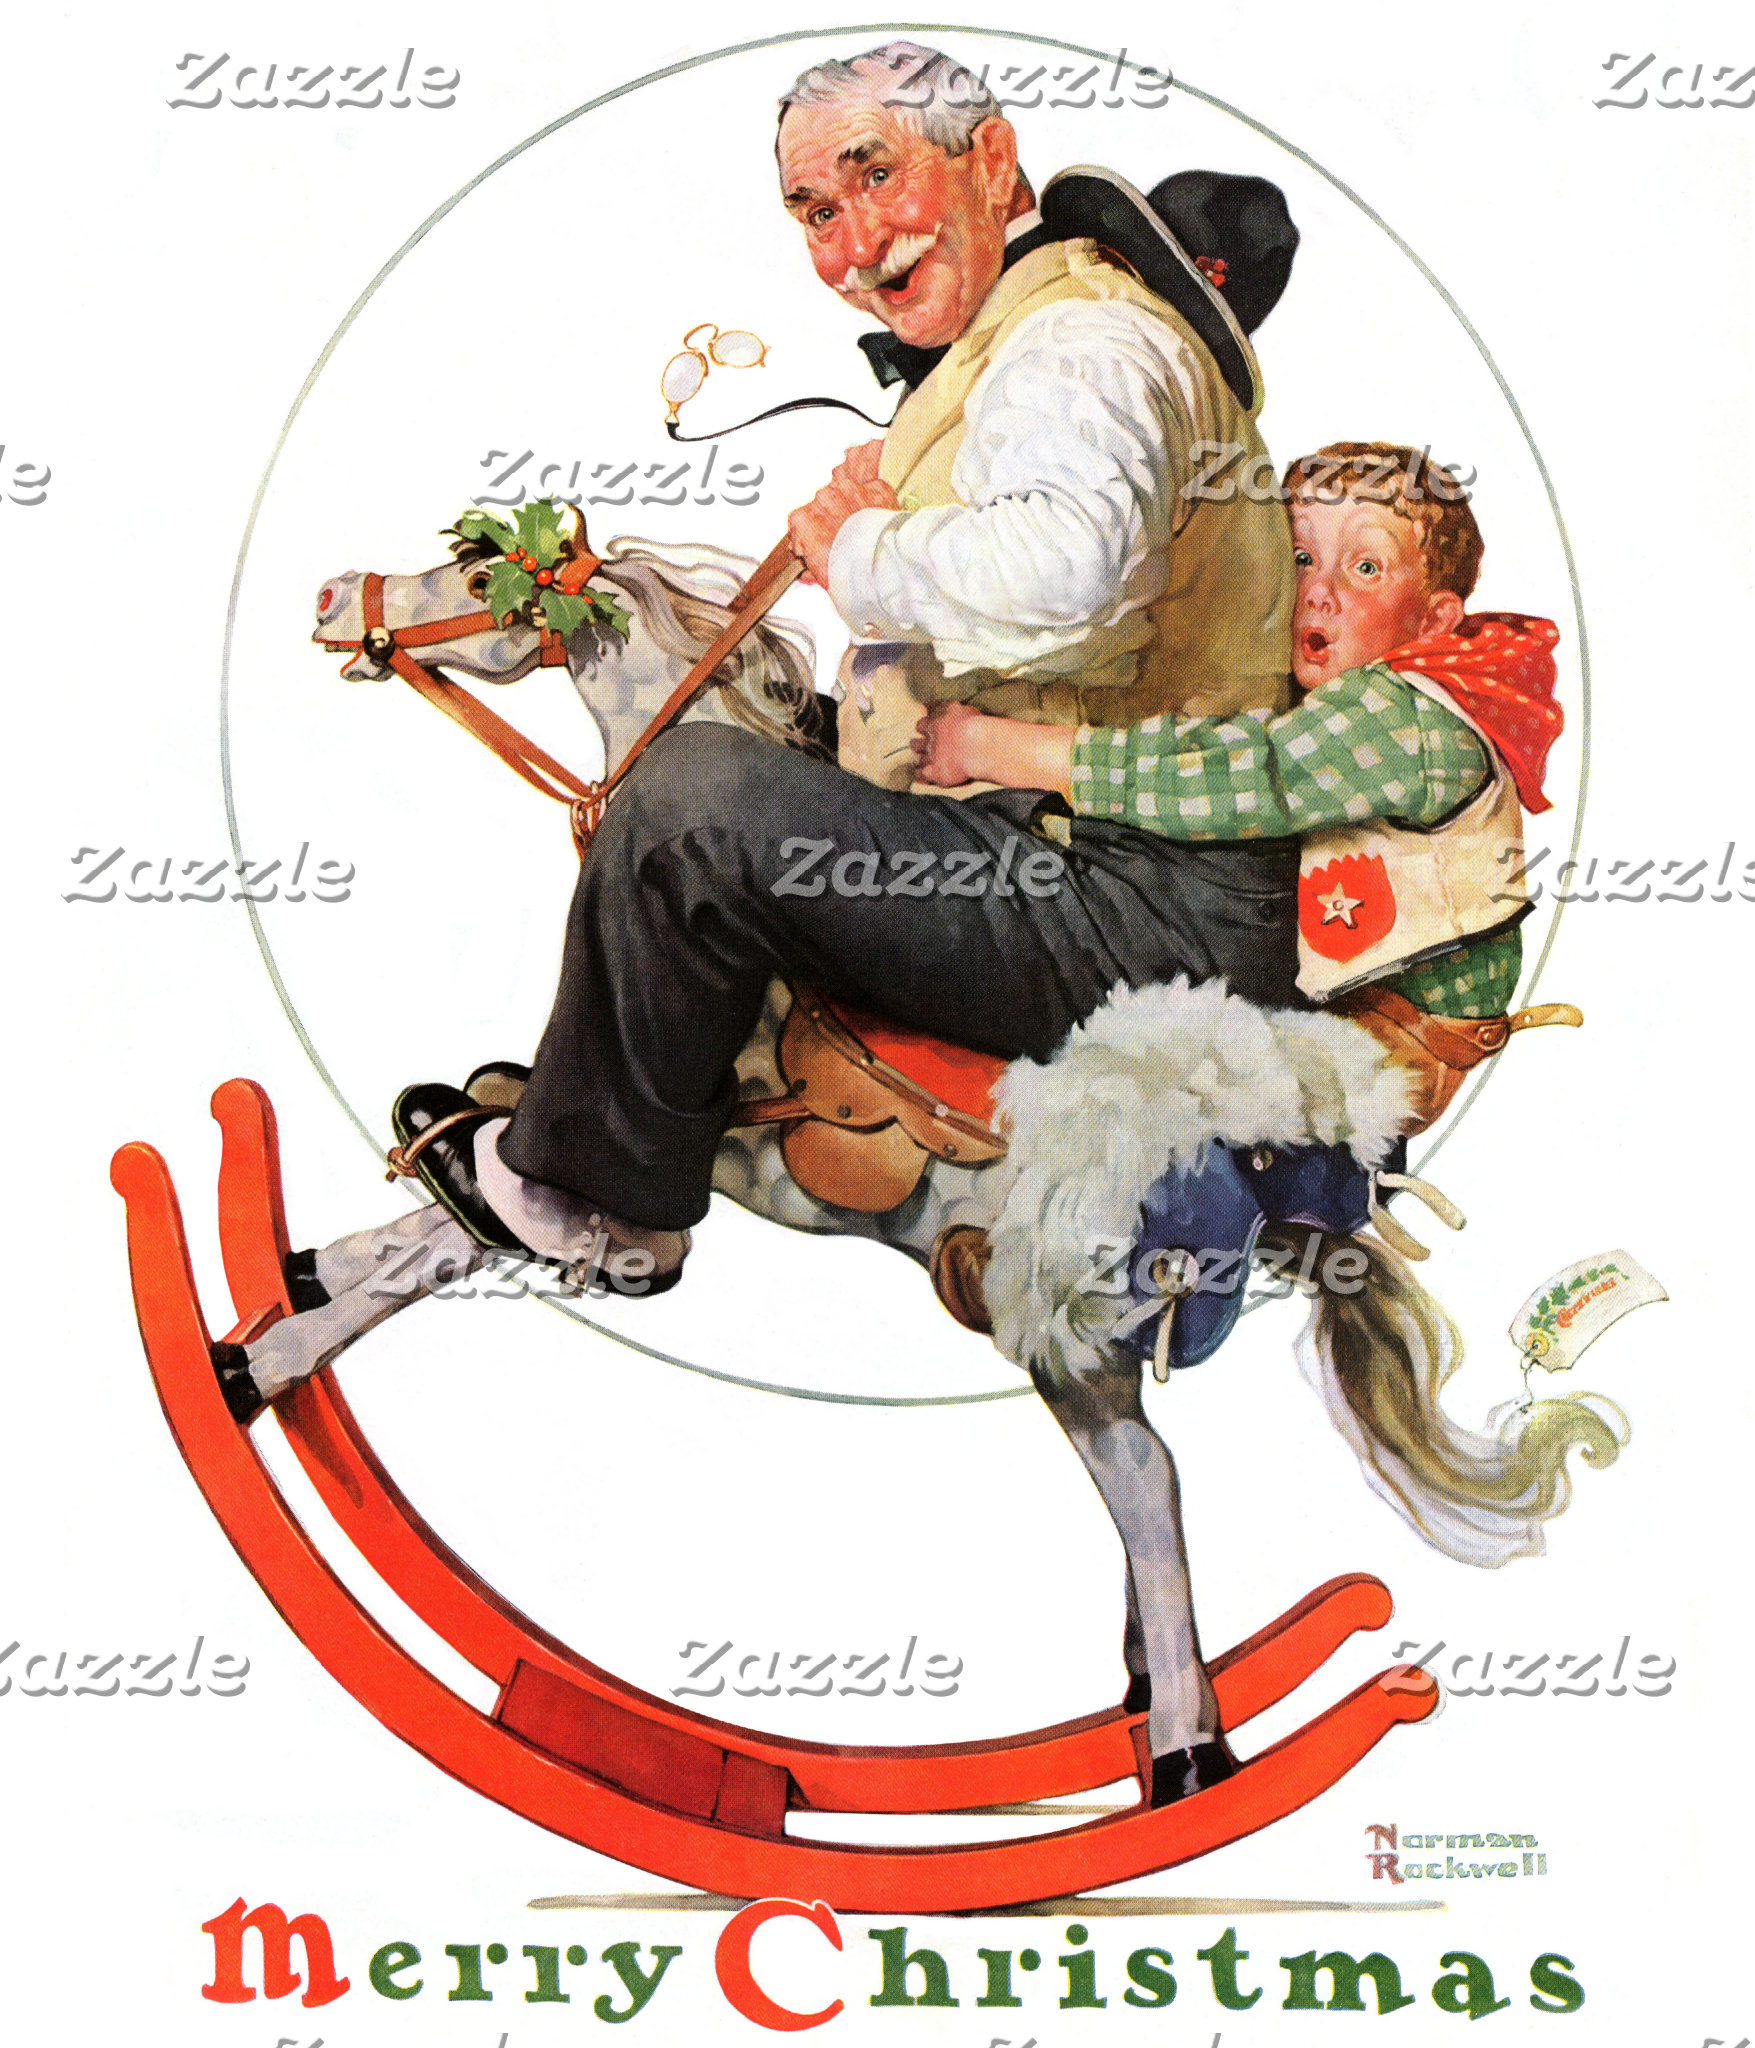 Gramps on Rocking Horse